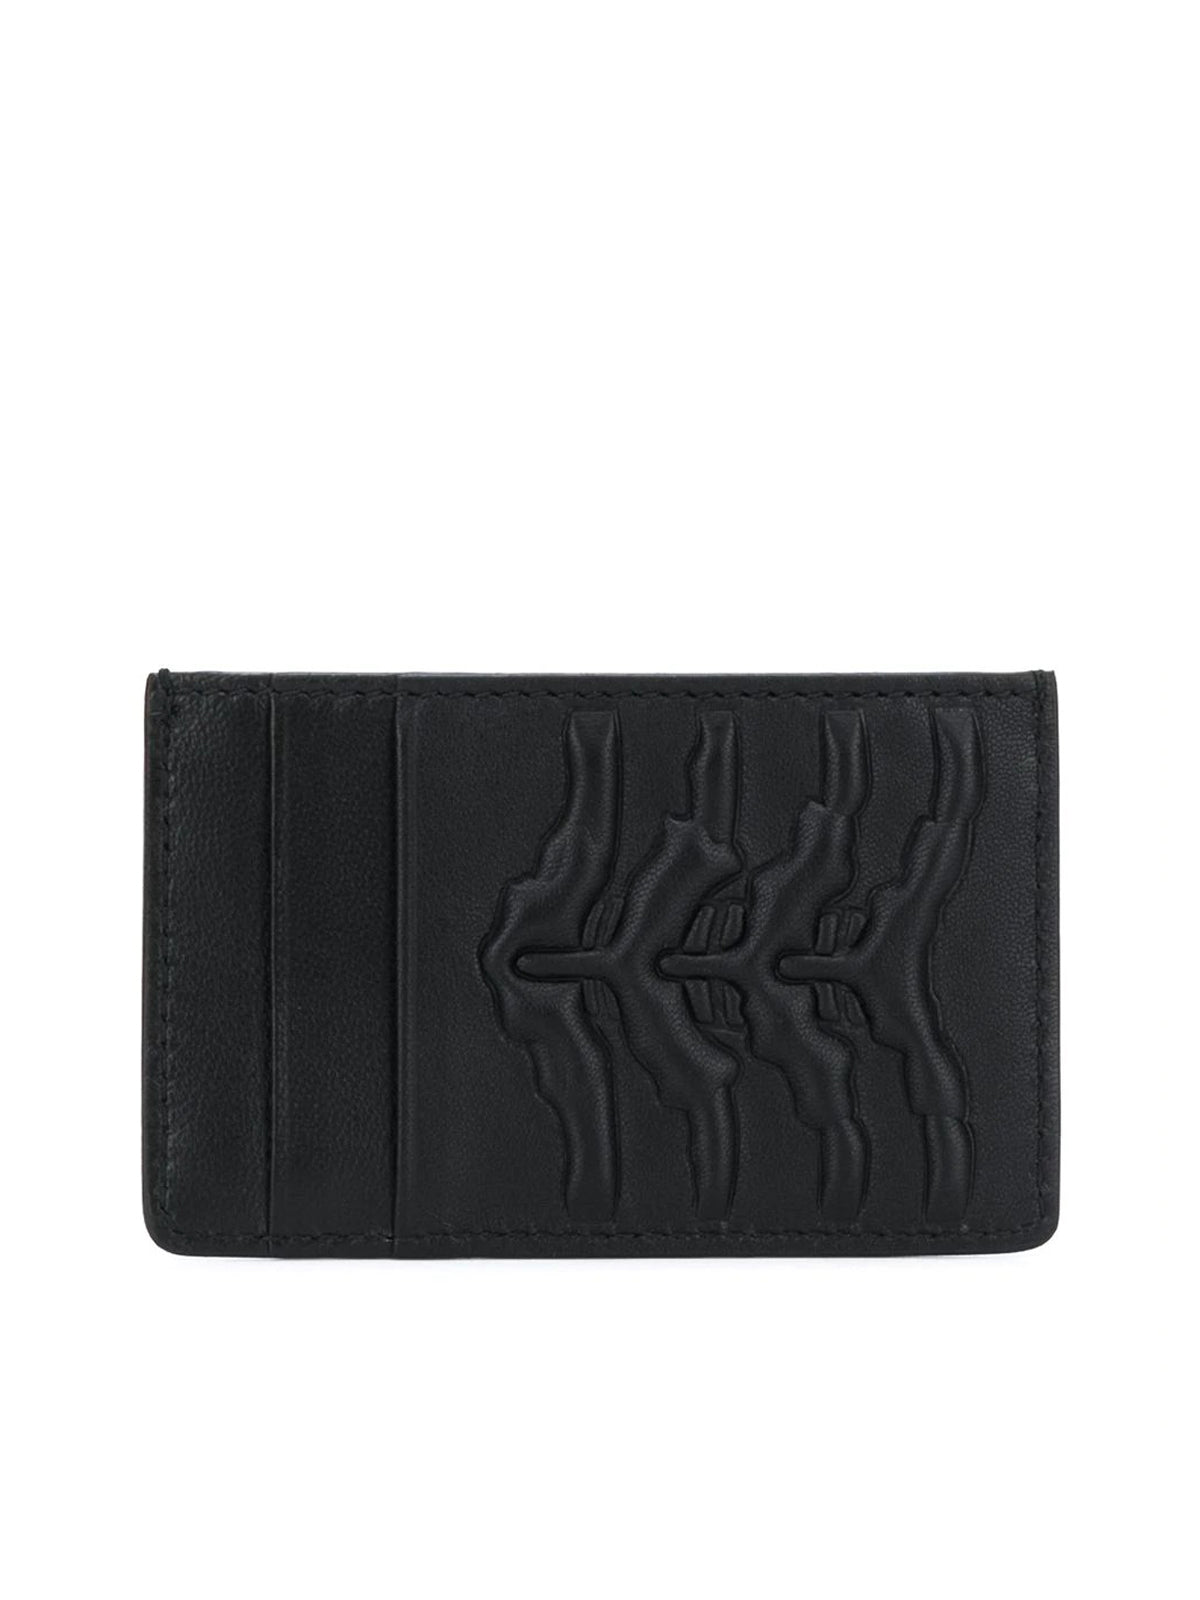 RIB CAGE EMBOSSED CARD HOLDER